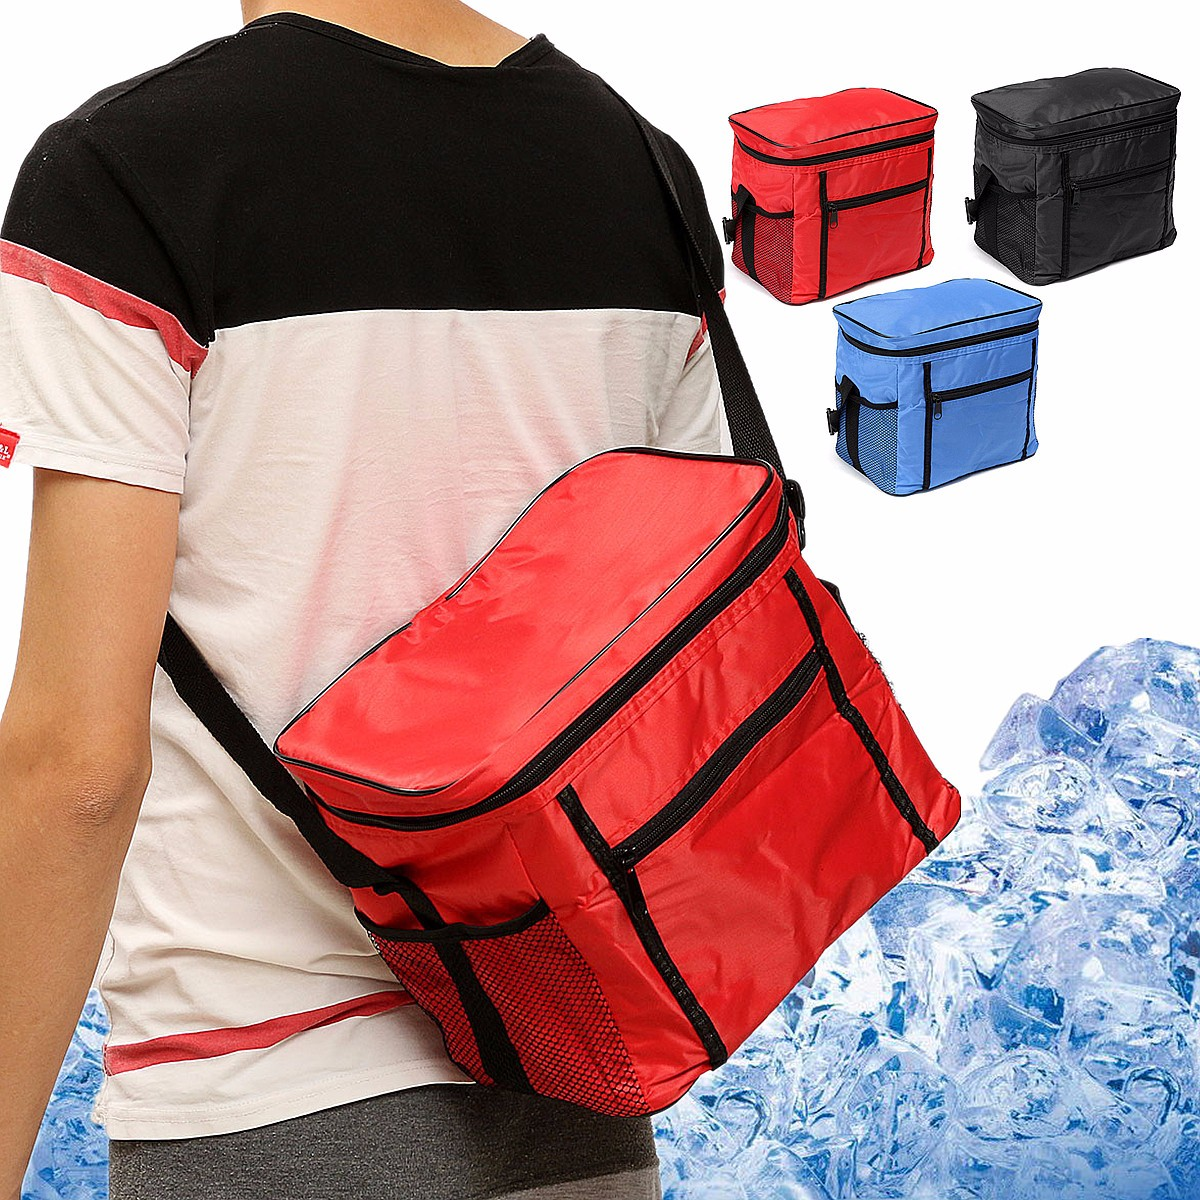 Insulation Bag, Waterproof Travel Thermal Cooler Picnic Lunch Box Insulated Tote Ice Wine Bag( 27.5x17x24.5cm/10.83x6.69x9.65'')